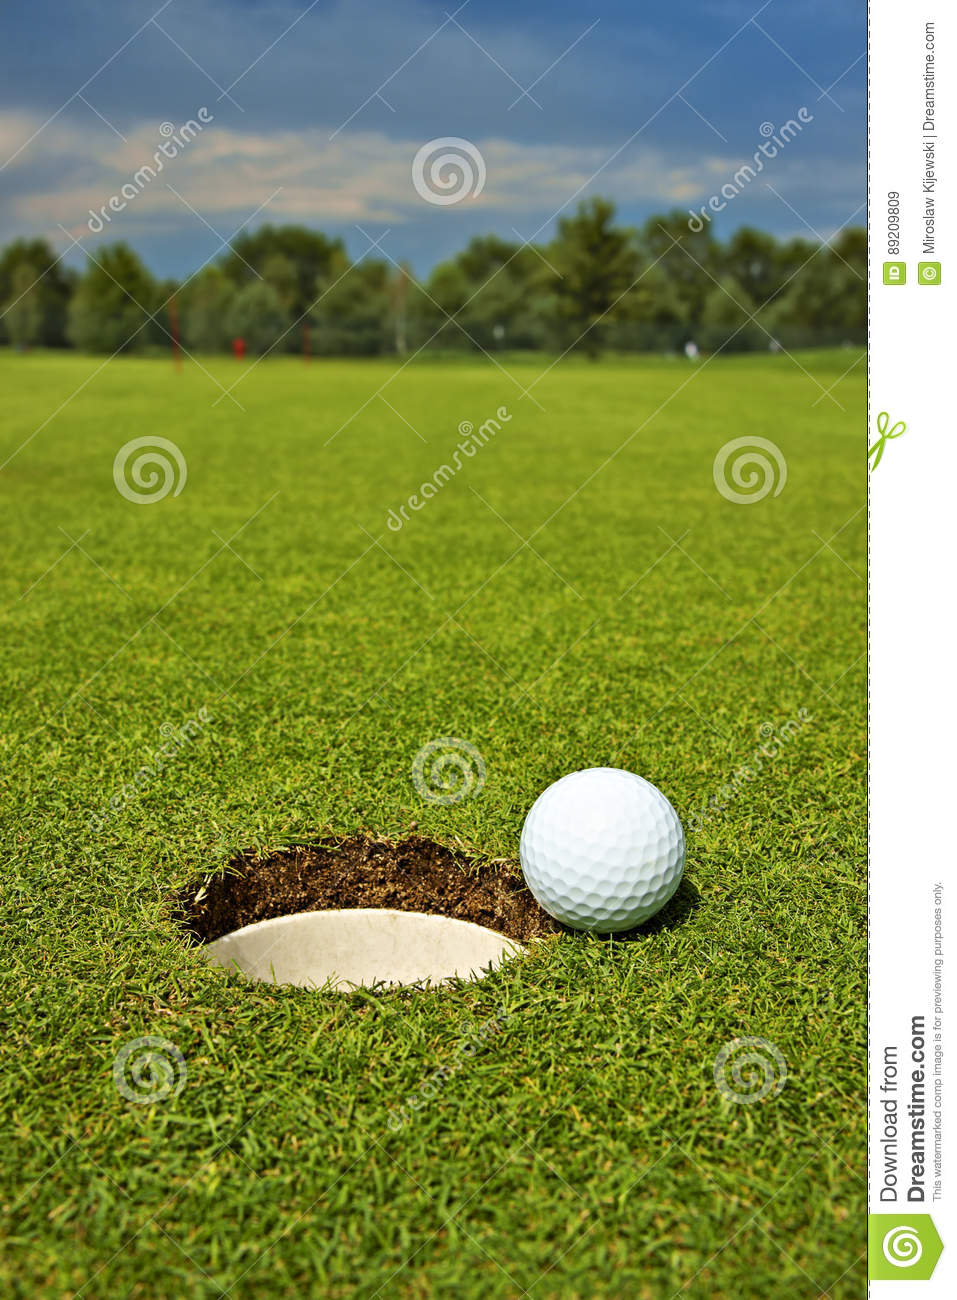 Golf, ball lying on the green next to hole